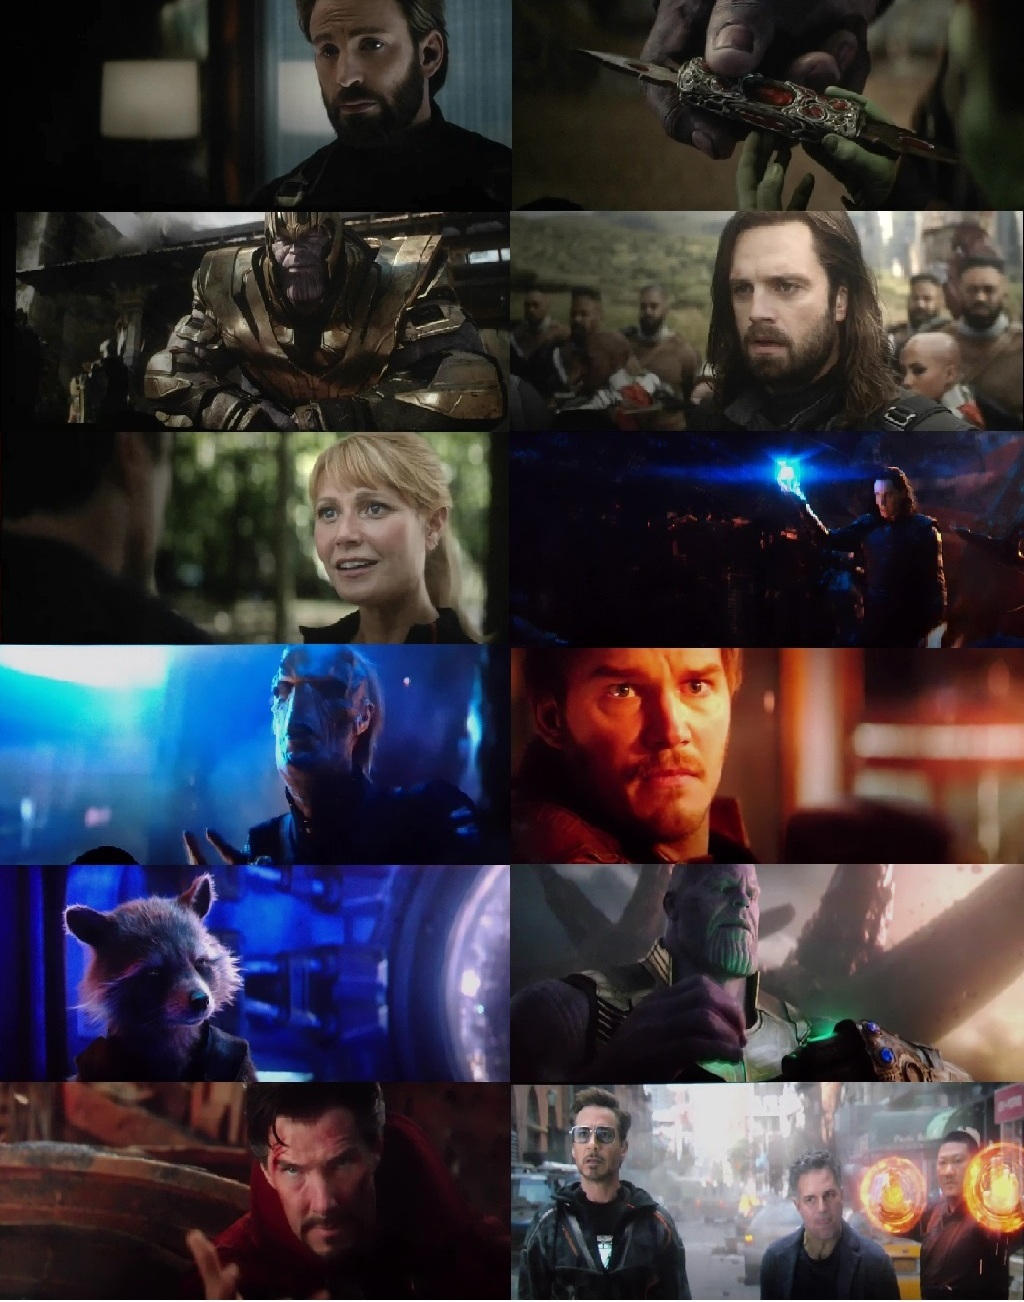 avengers infinity war full movie download in hindi dubbed 720p bolly4u